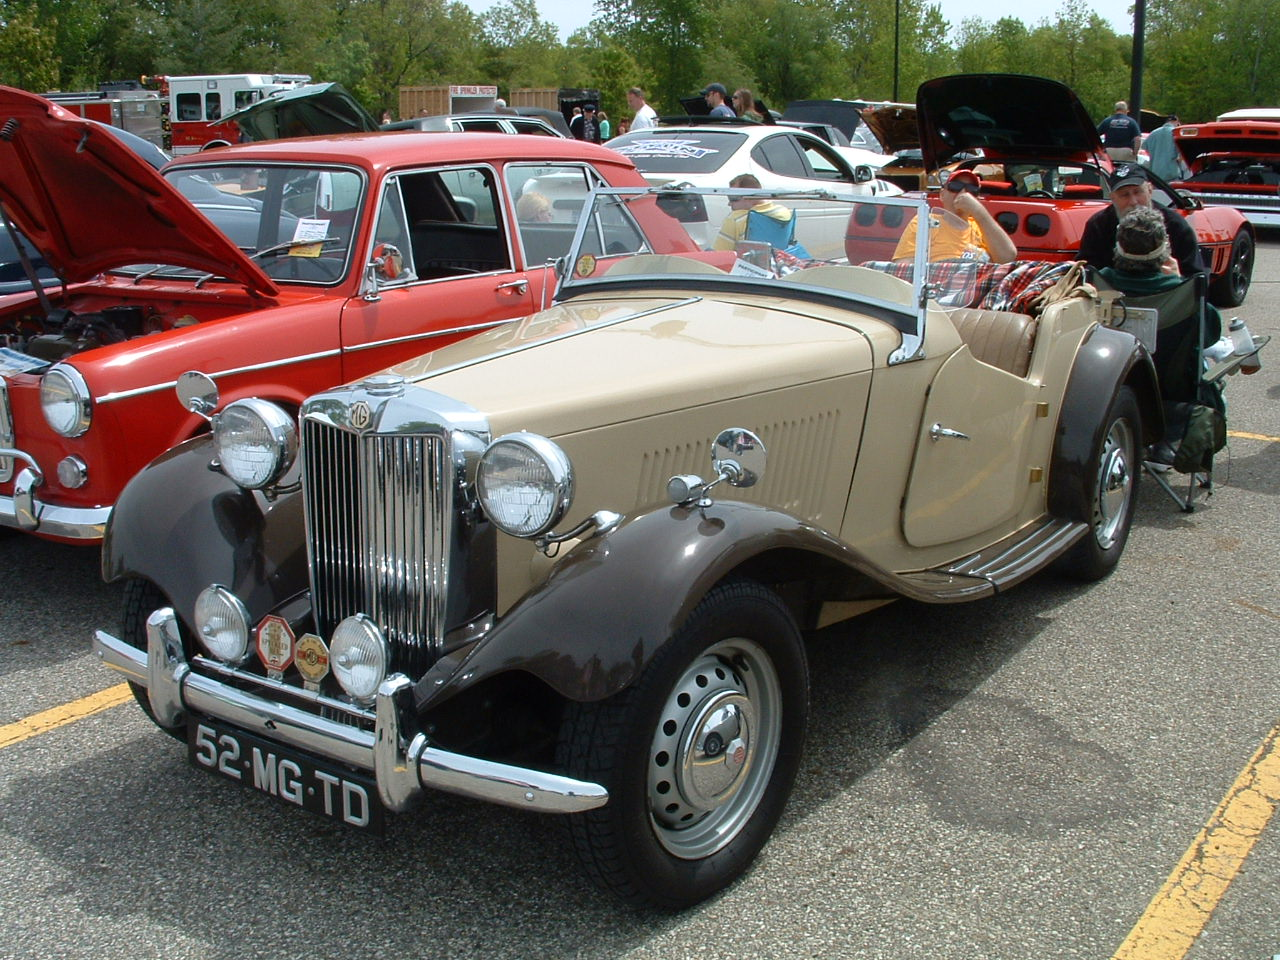 It is a 1952 MGTD brought to